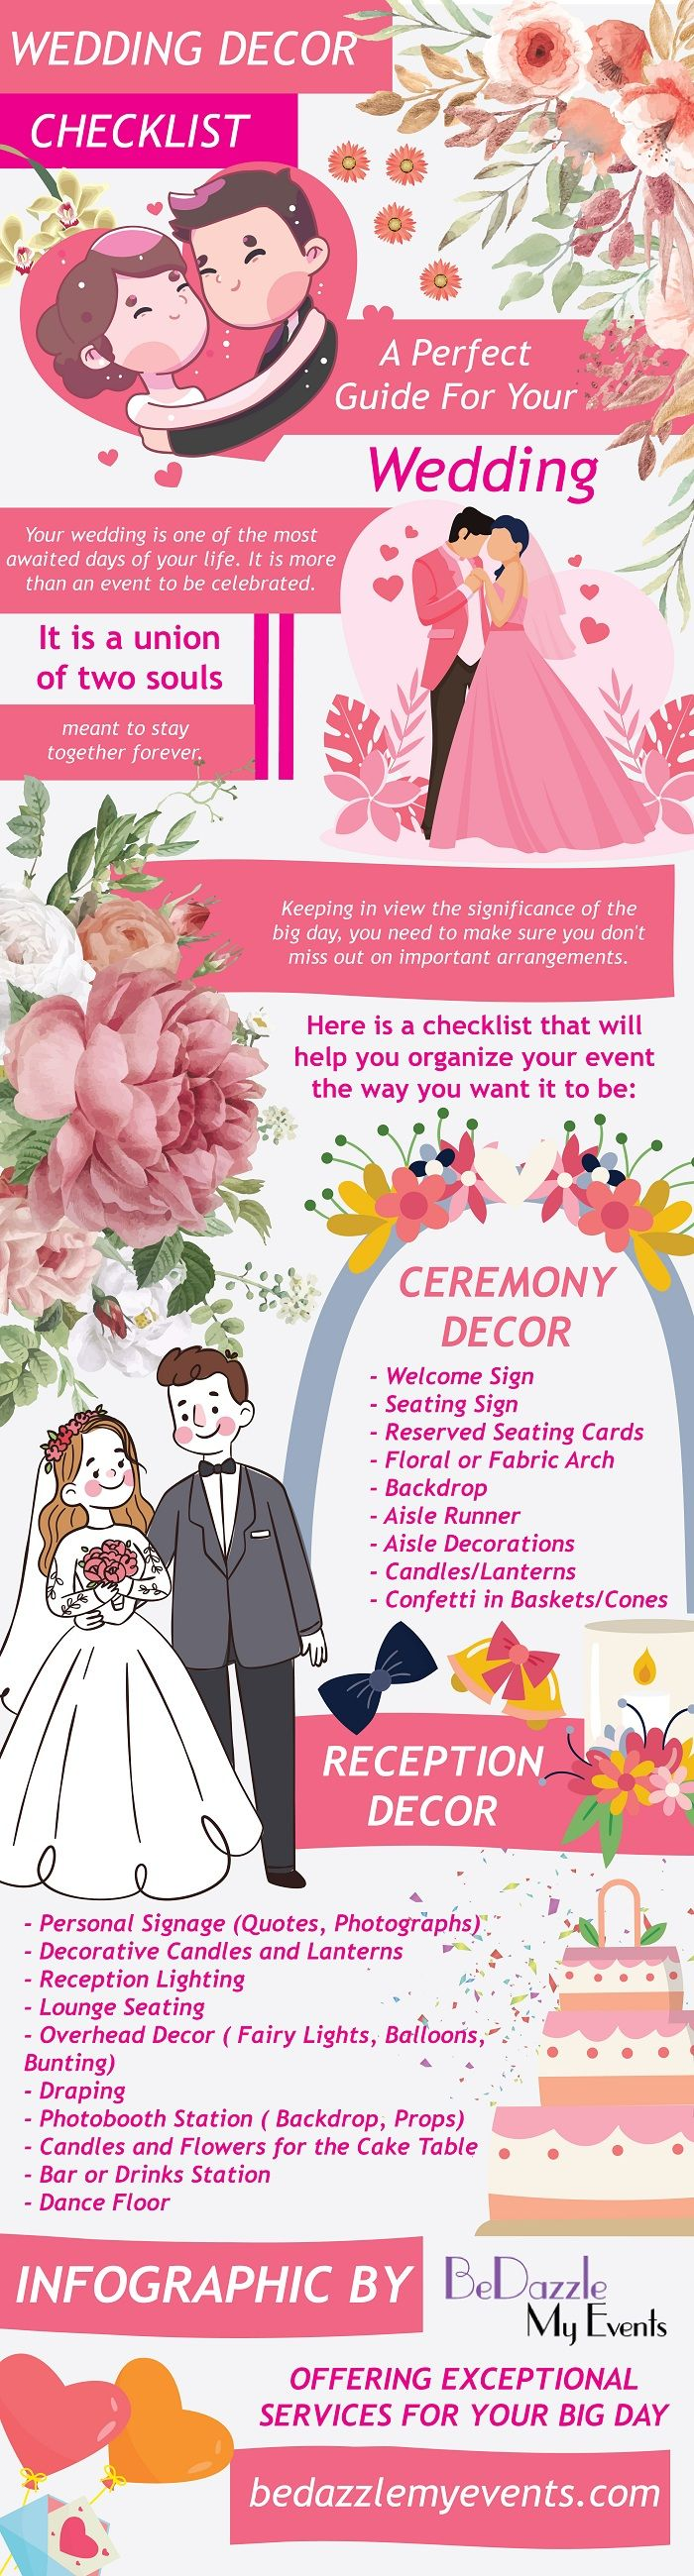 Wedding Decor Checklist A Perfect Guide For Your Wedding